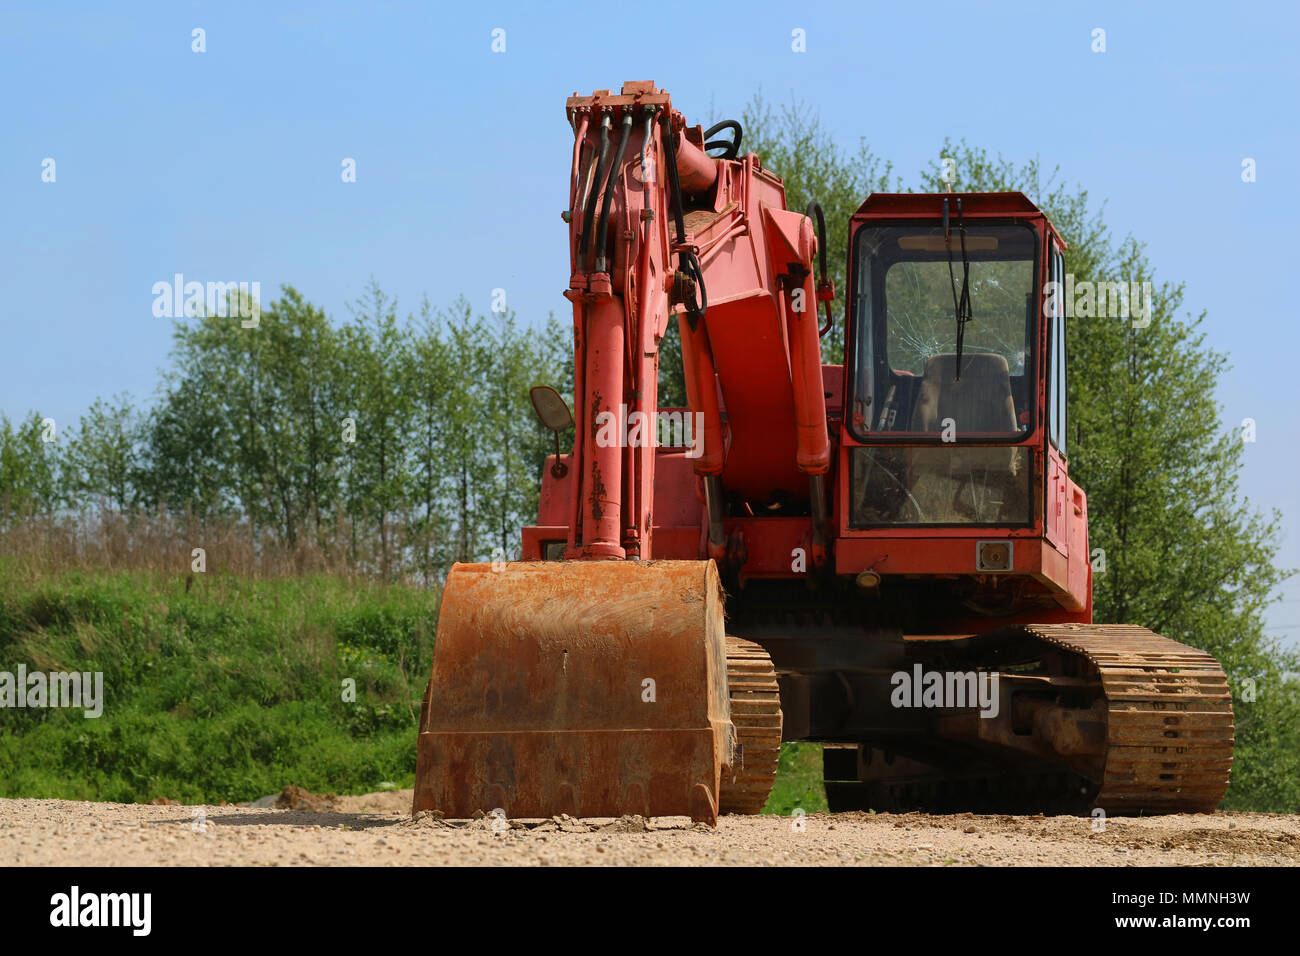 Old rusty excavator with broken window on sandy ground - Stock Image